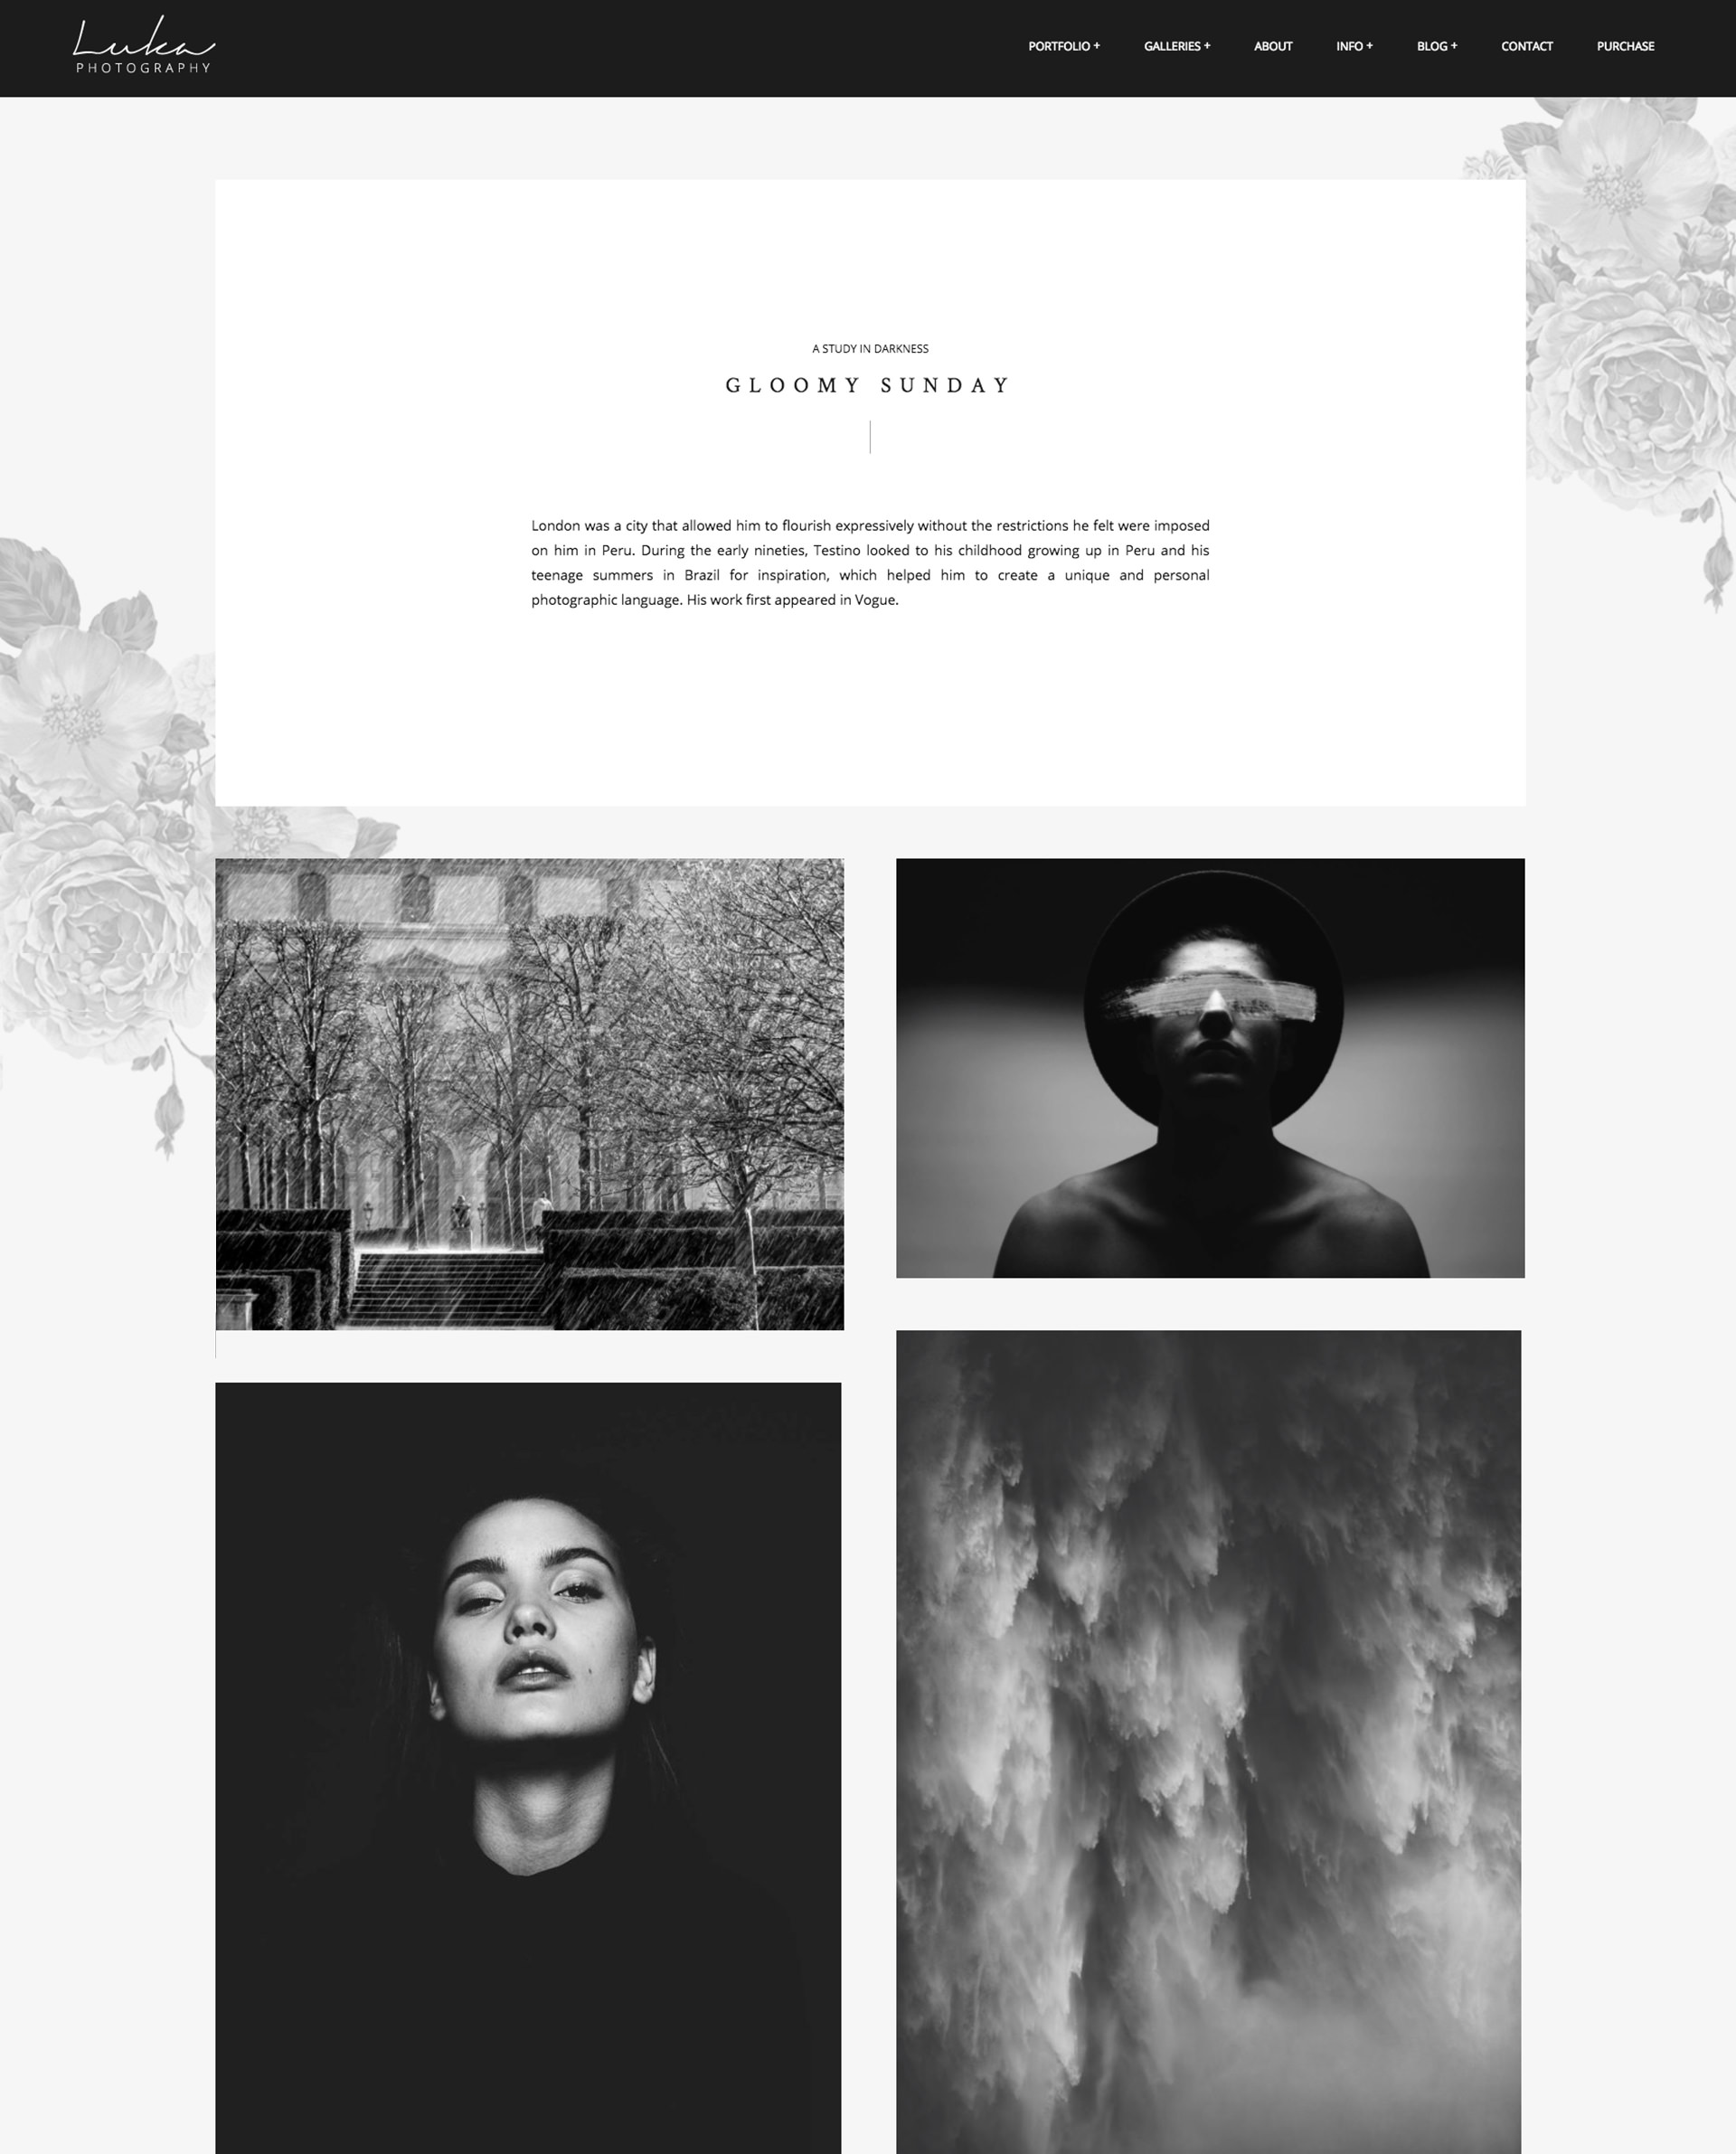 Luka Portfolio Theme for Photographers - masonry gallery layout with text